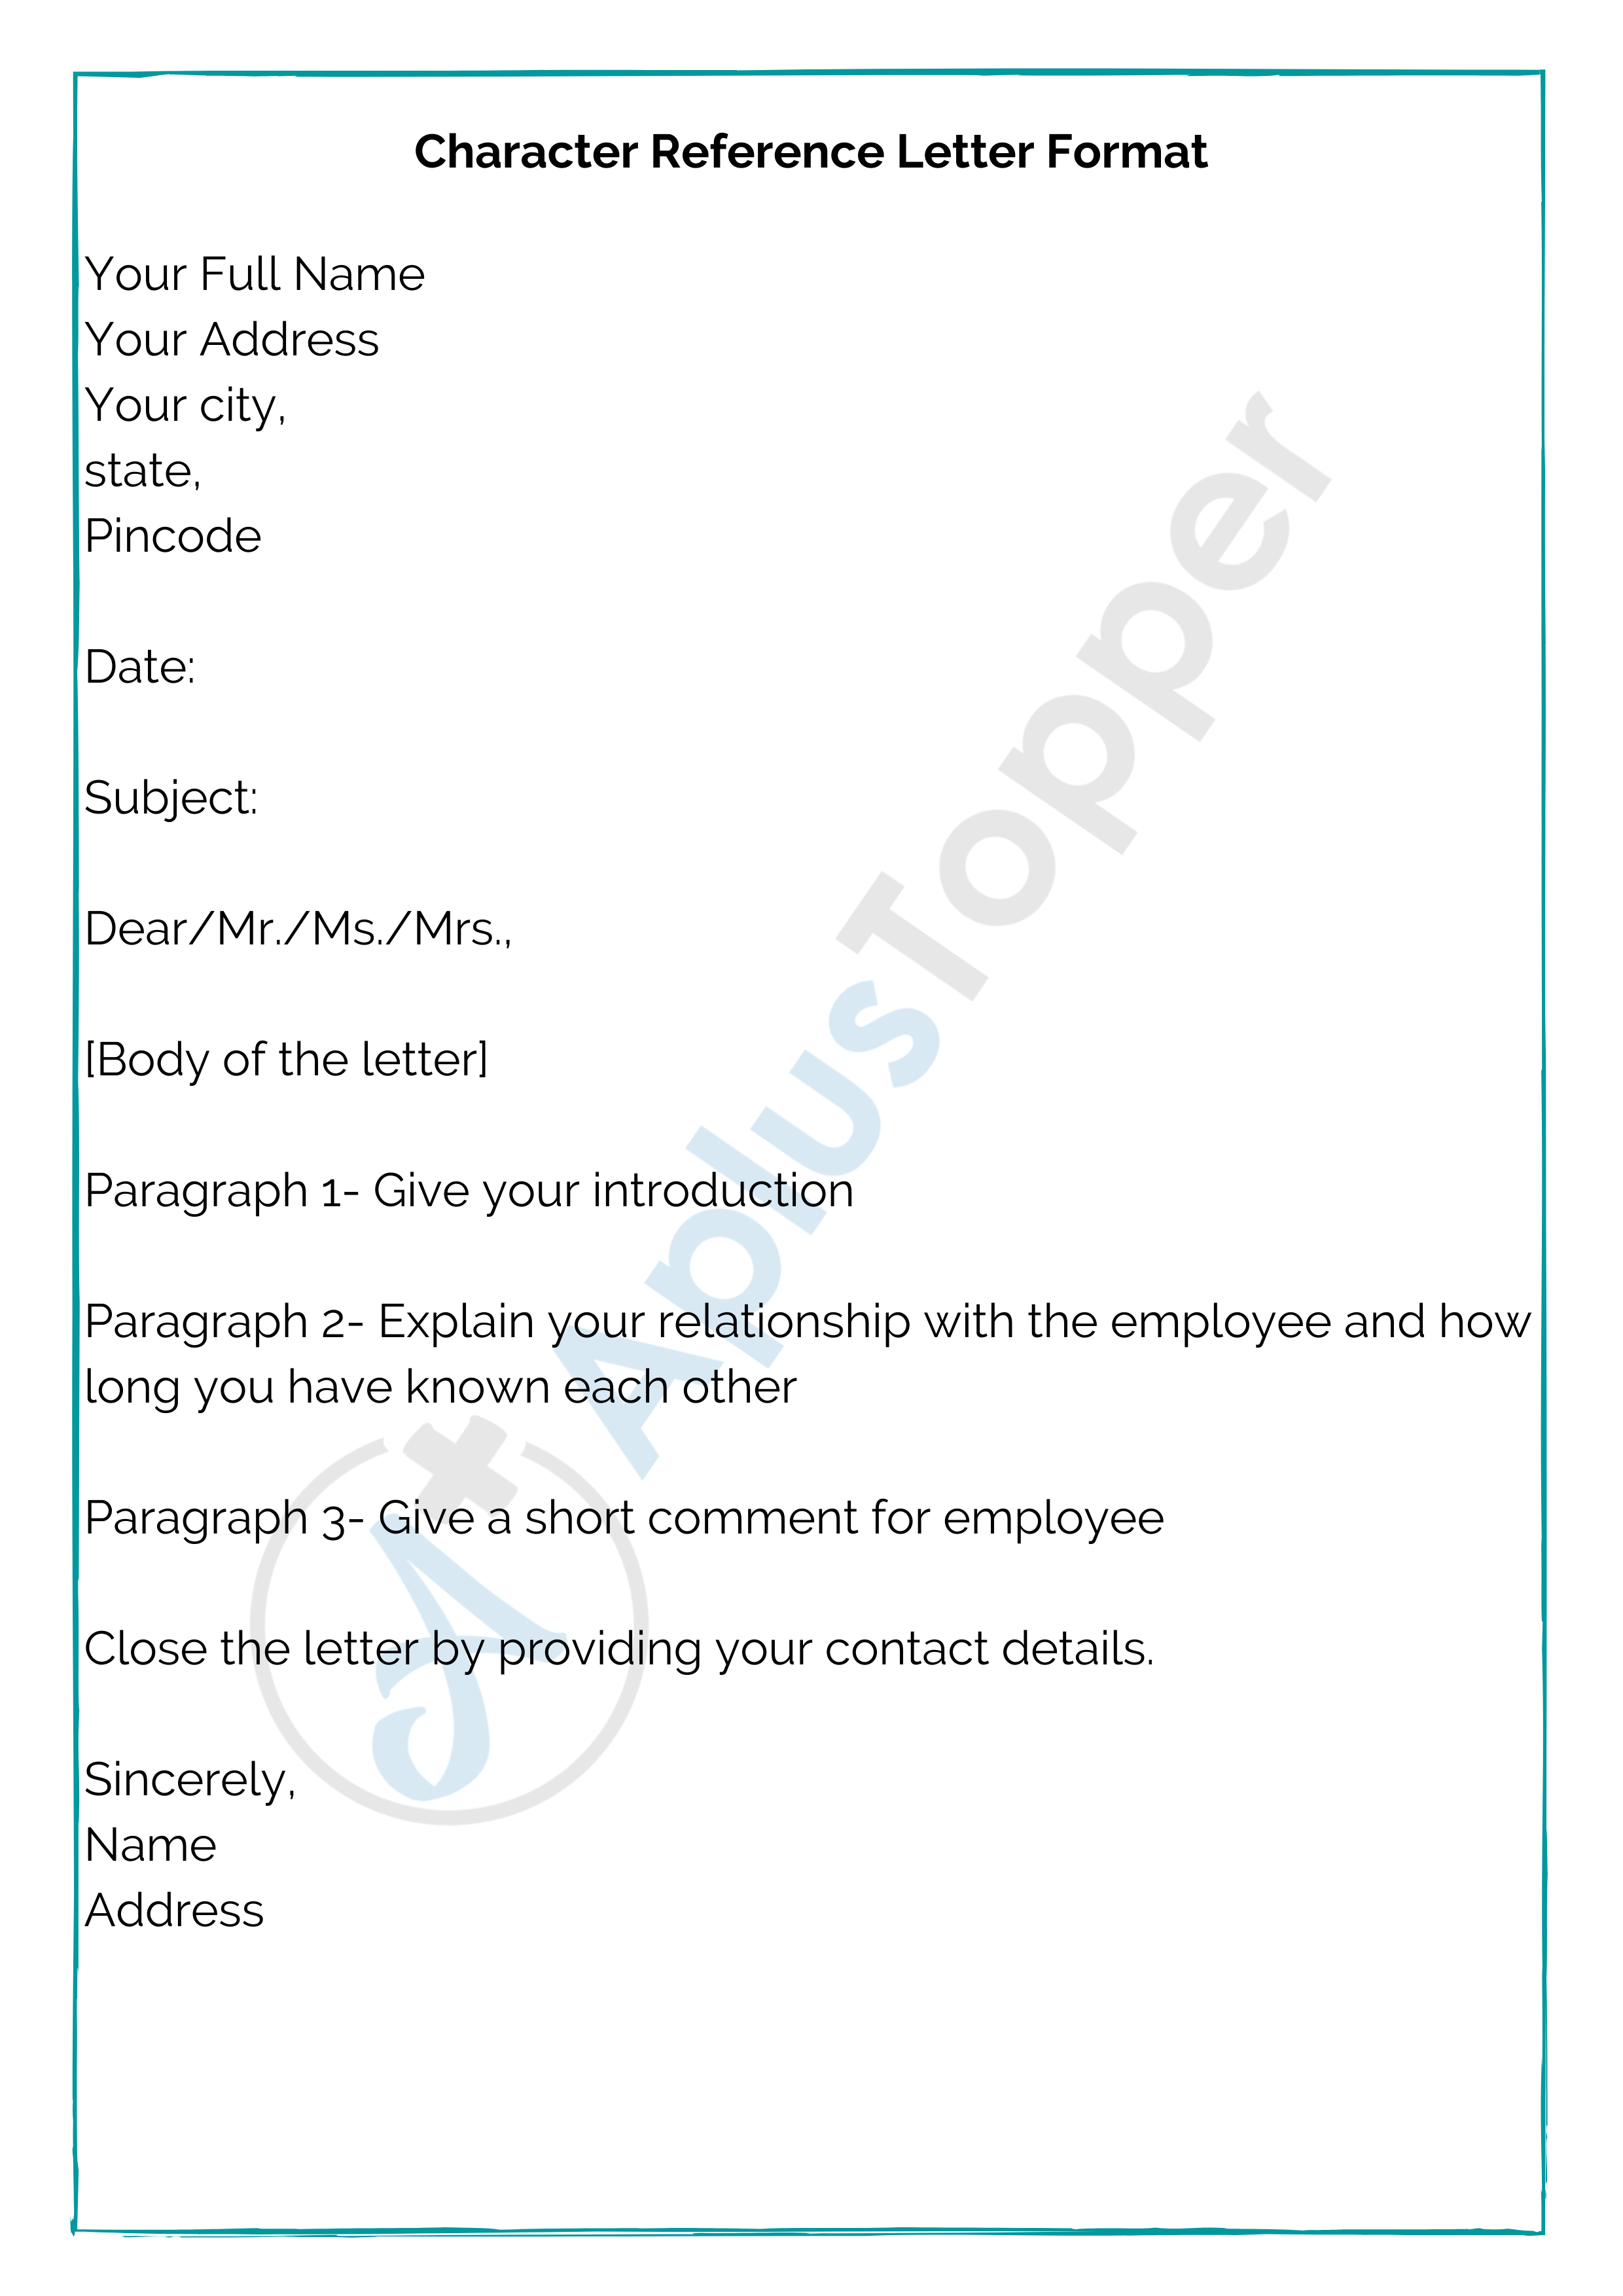 Character Reference Letter Format